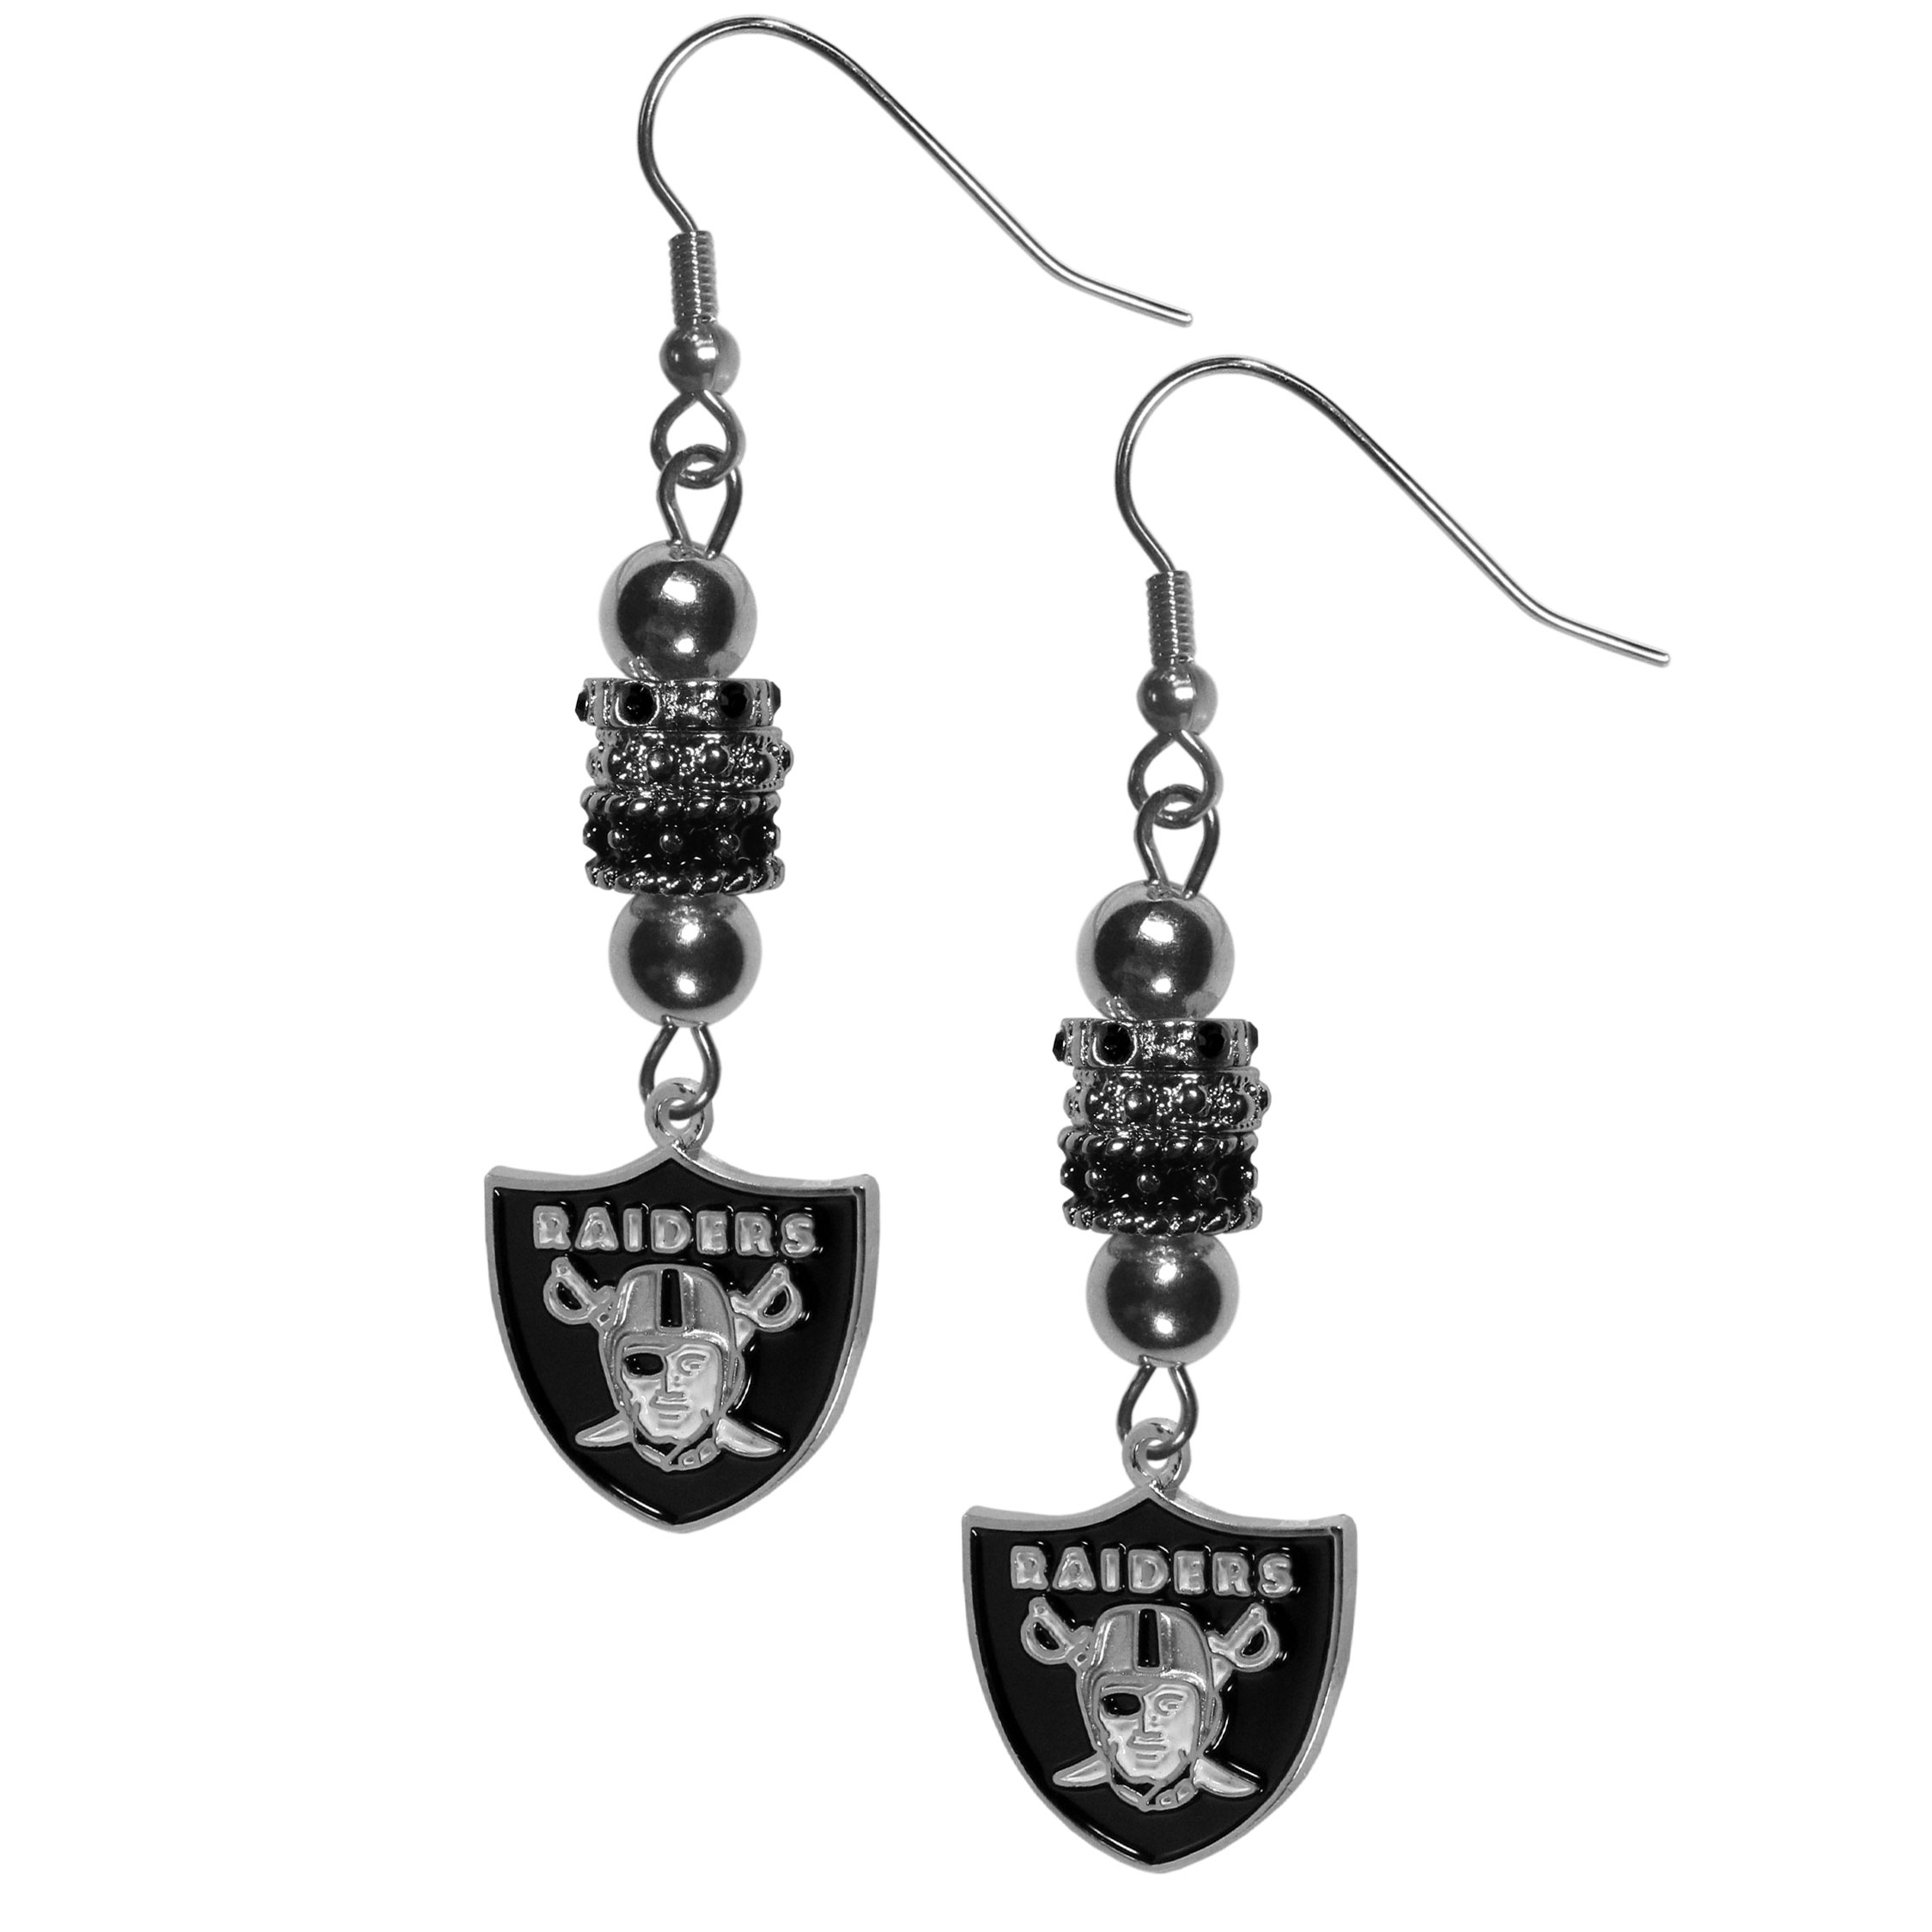 Oakland Raiders Euro Bead Earrings - These beautiful euro style earrings feature 3 euro beads and a detailed Oakland Raiders charm on hypoallergenic fishhook posts.